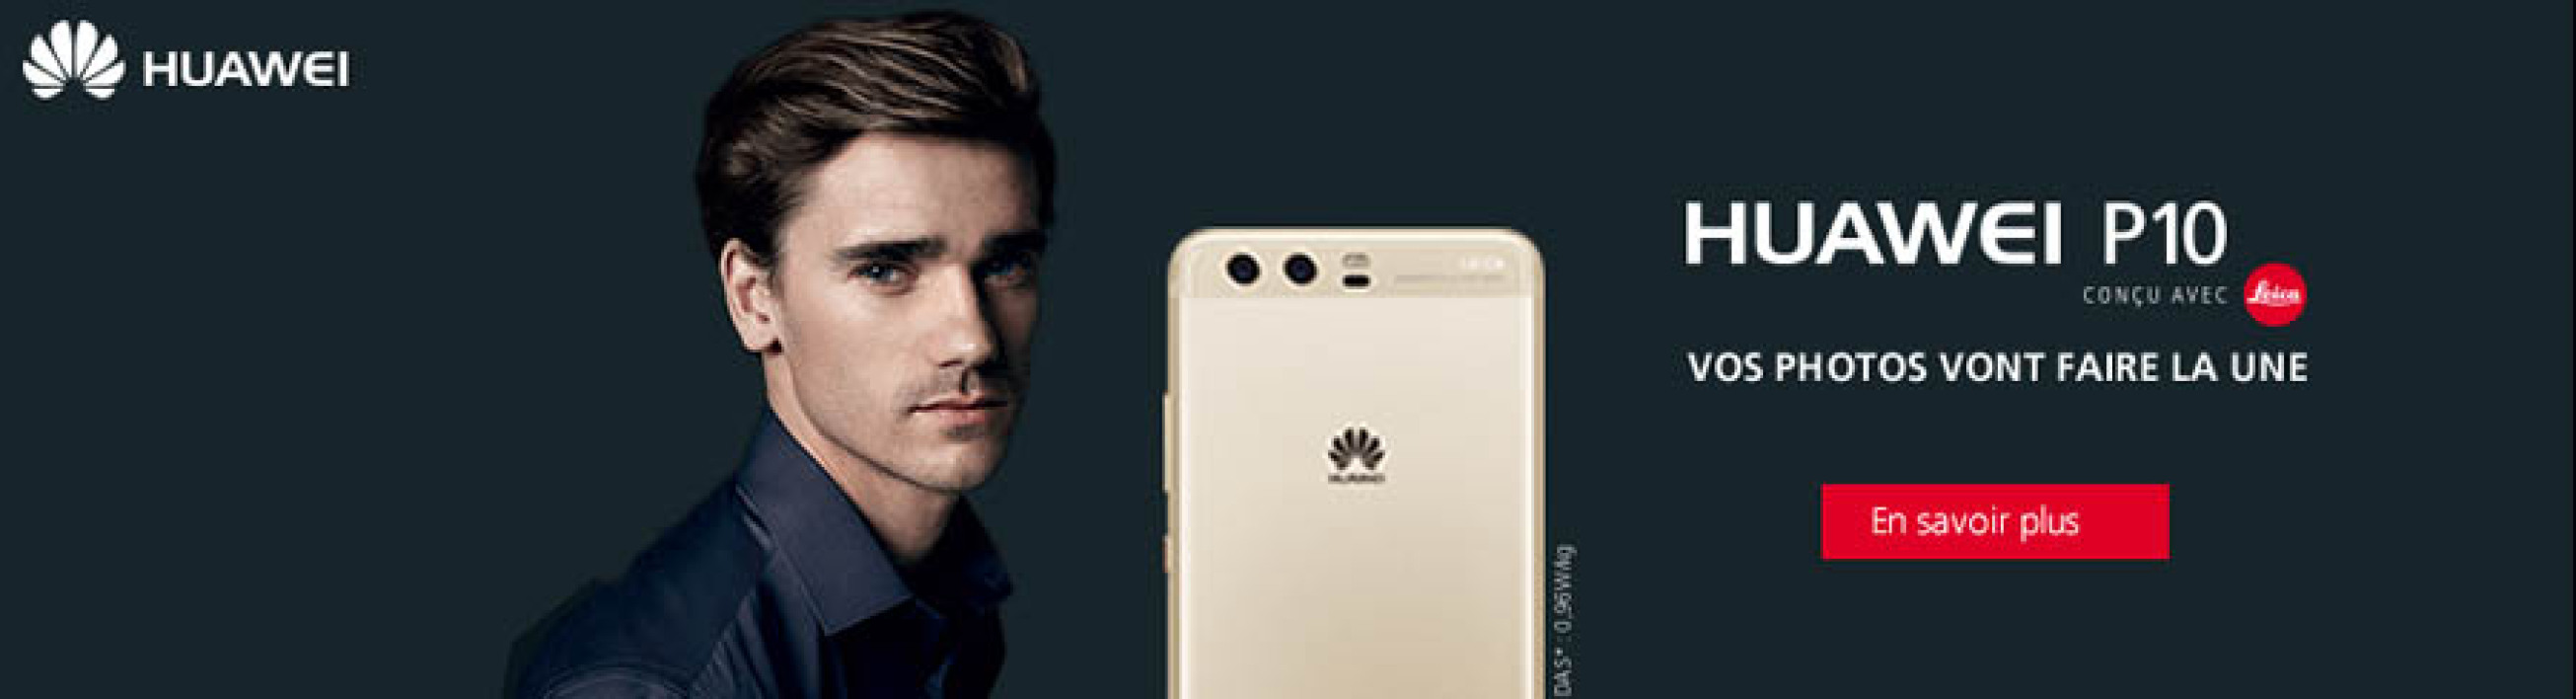 antoine griezmann dans une histoire floue avec huawei. Black Bedroom Furniture Sets. Home Design Ideas